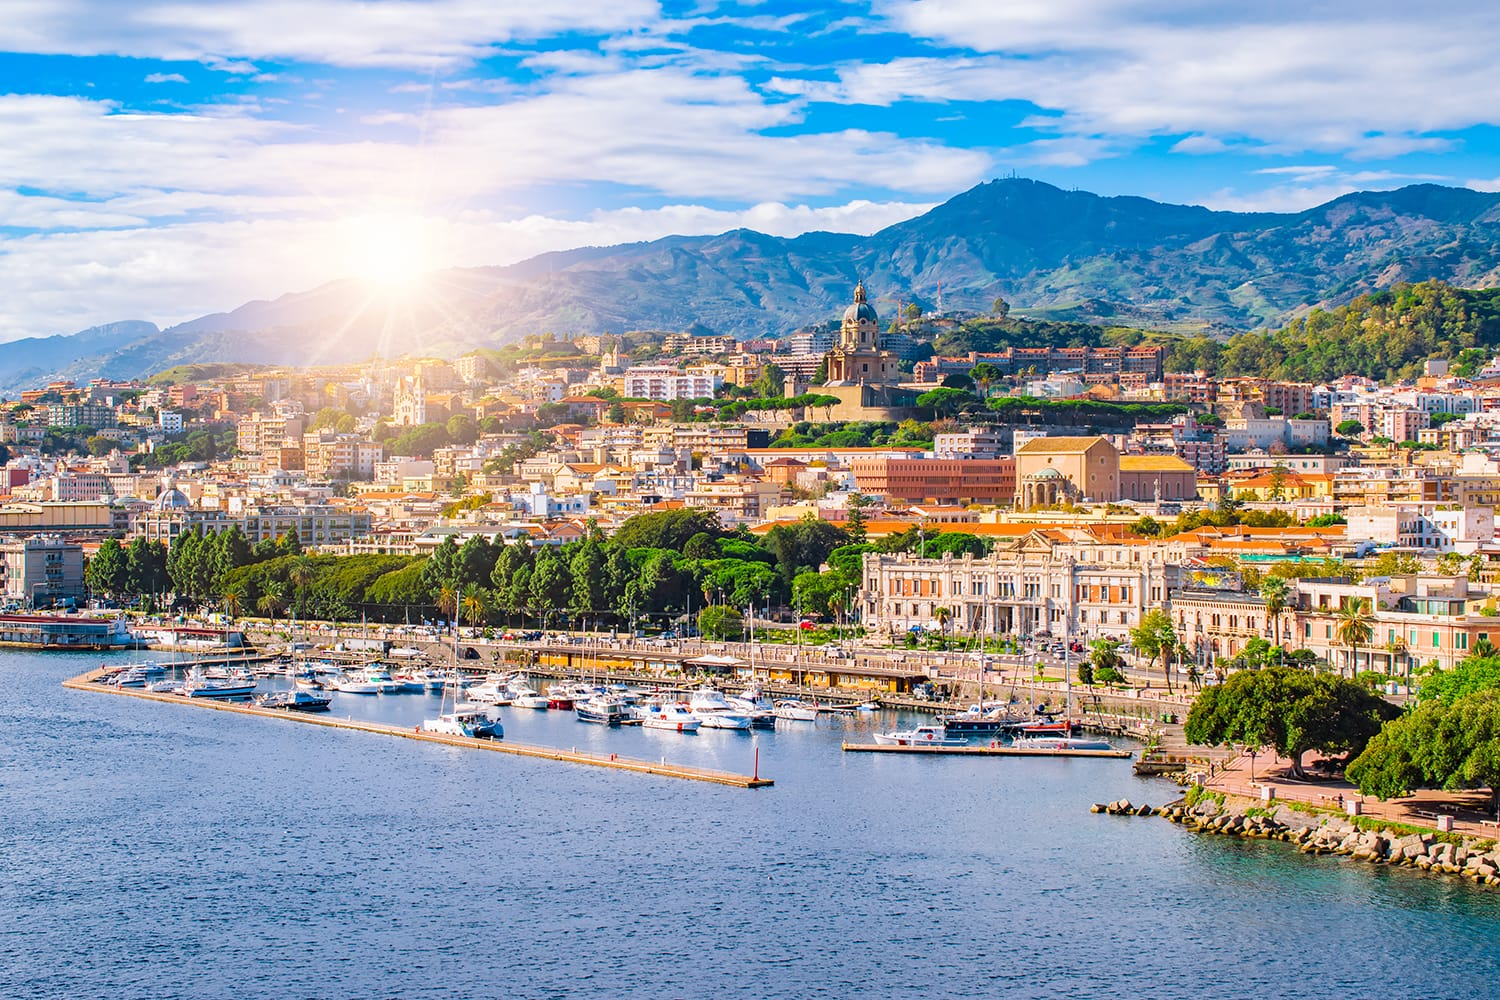 Beautiful cityscape and harbor of Messina, Sicily, Italy